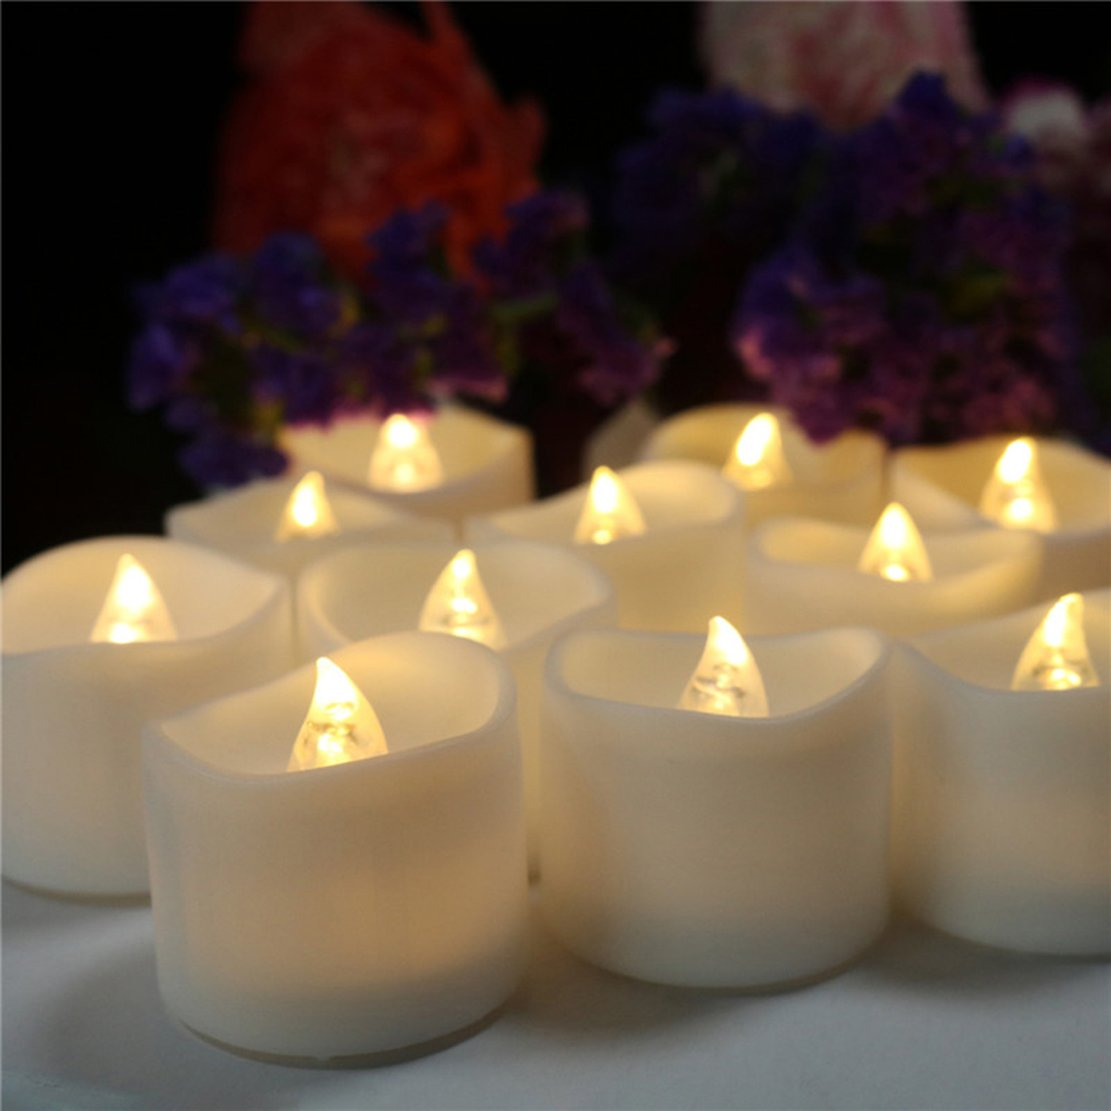 200 Hours Led Mini Tea Light with Timer (6 Hrs On 18 Hrs Off) Flameless Warm White Flickering Fake Votive Candle Wavy Open Rustic Long Lasting Electric Timed Tealights Party Home Wedding Decor 96 PCS by Beauty Collector (Image #4)